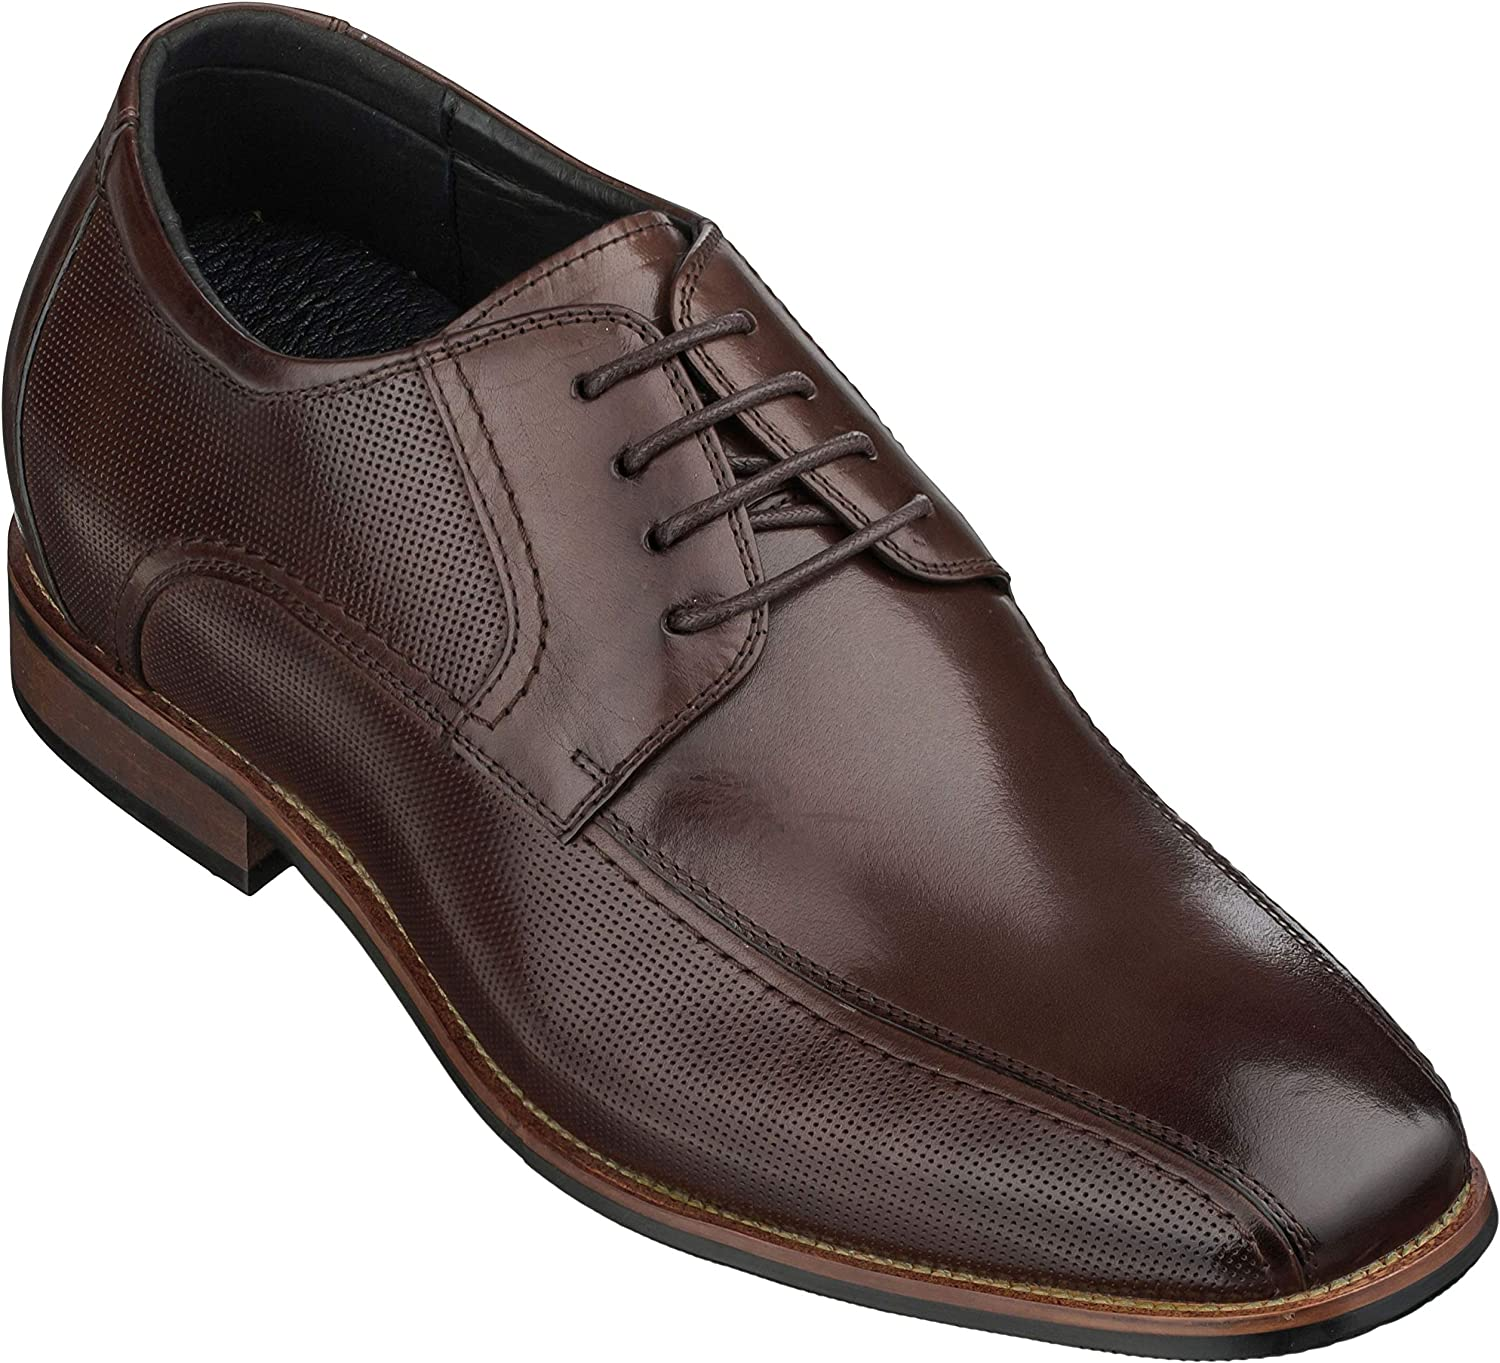 CALTO Men's Invisible Height Increasing Elevator Shoes - Coffee Brown Premium Leather Lace-up Formal Oxfords - 3 Inches Taller - Y10654